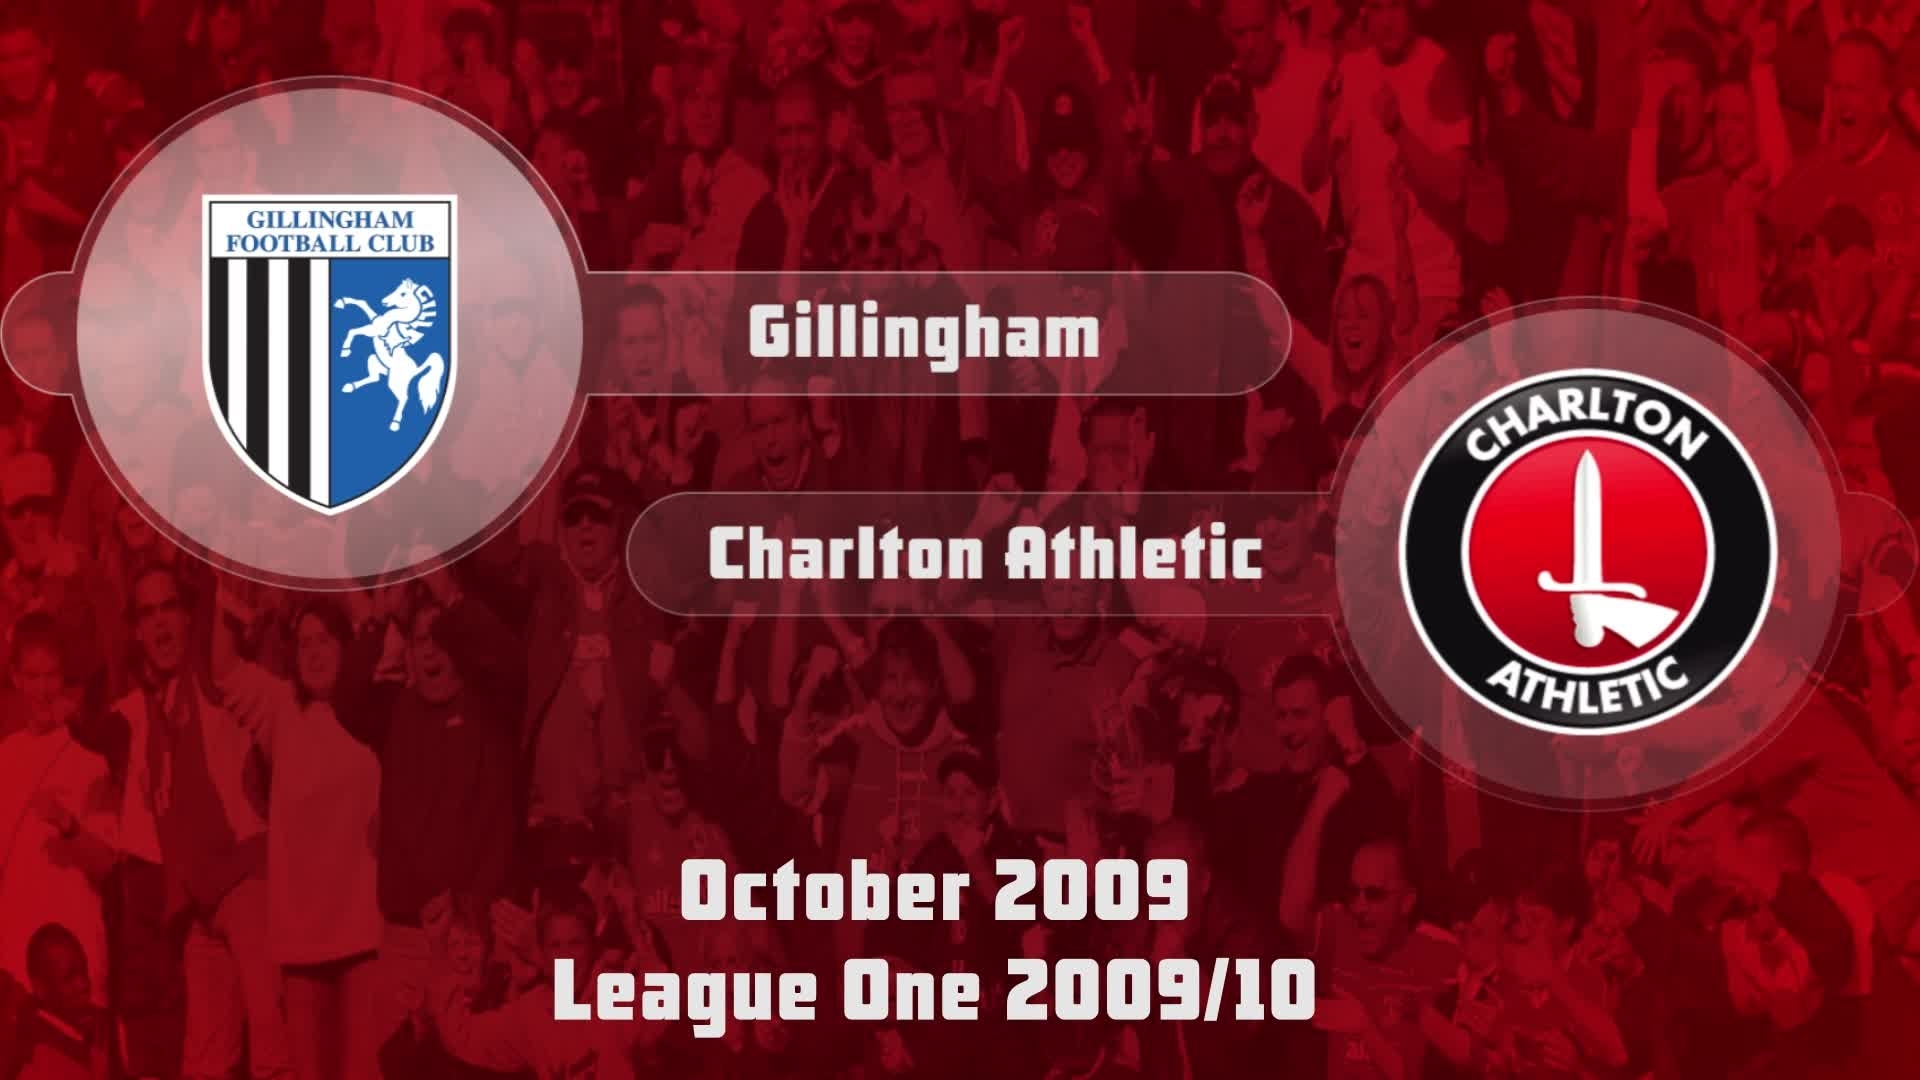 16 HIGHLIGHTS | Gillingham 1 Charlton 1 (Oct 2009)